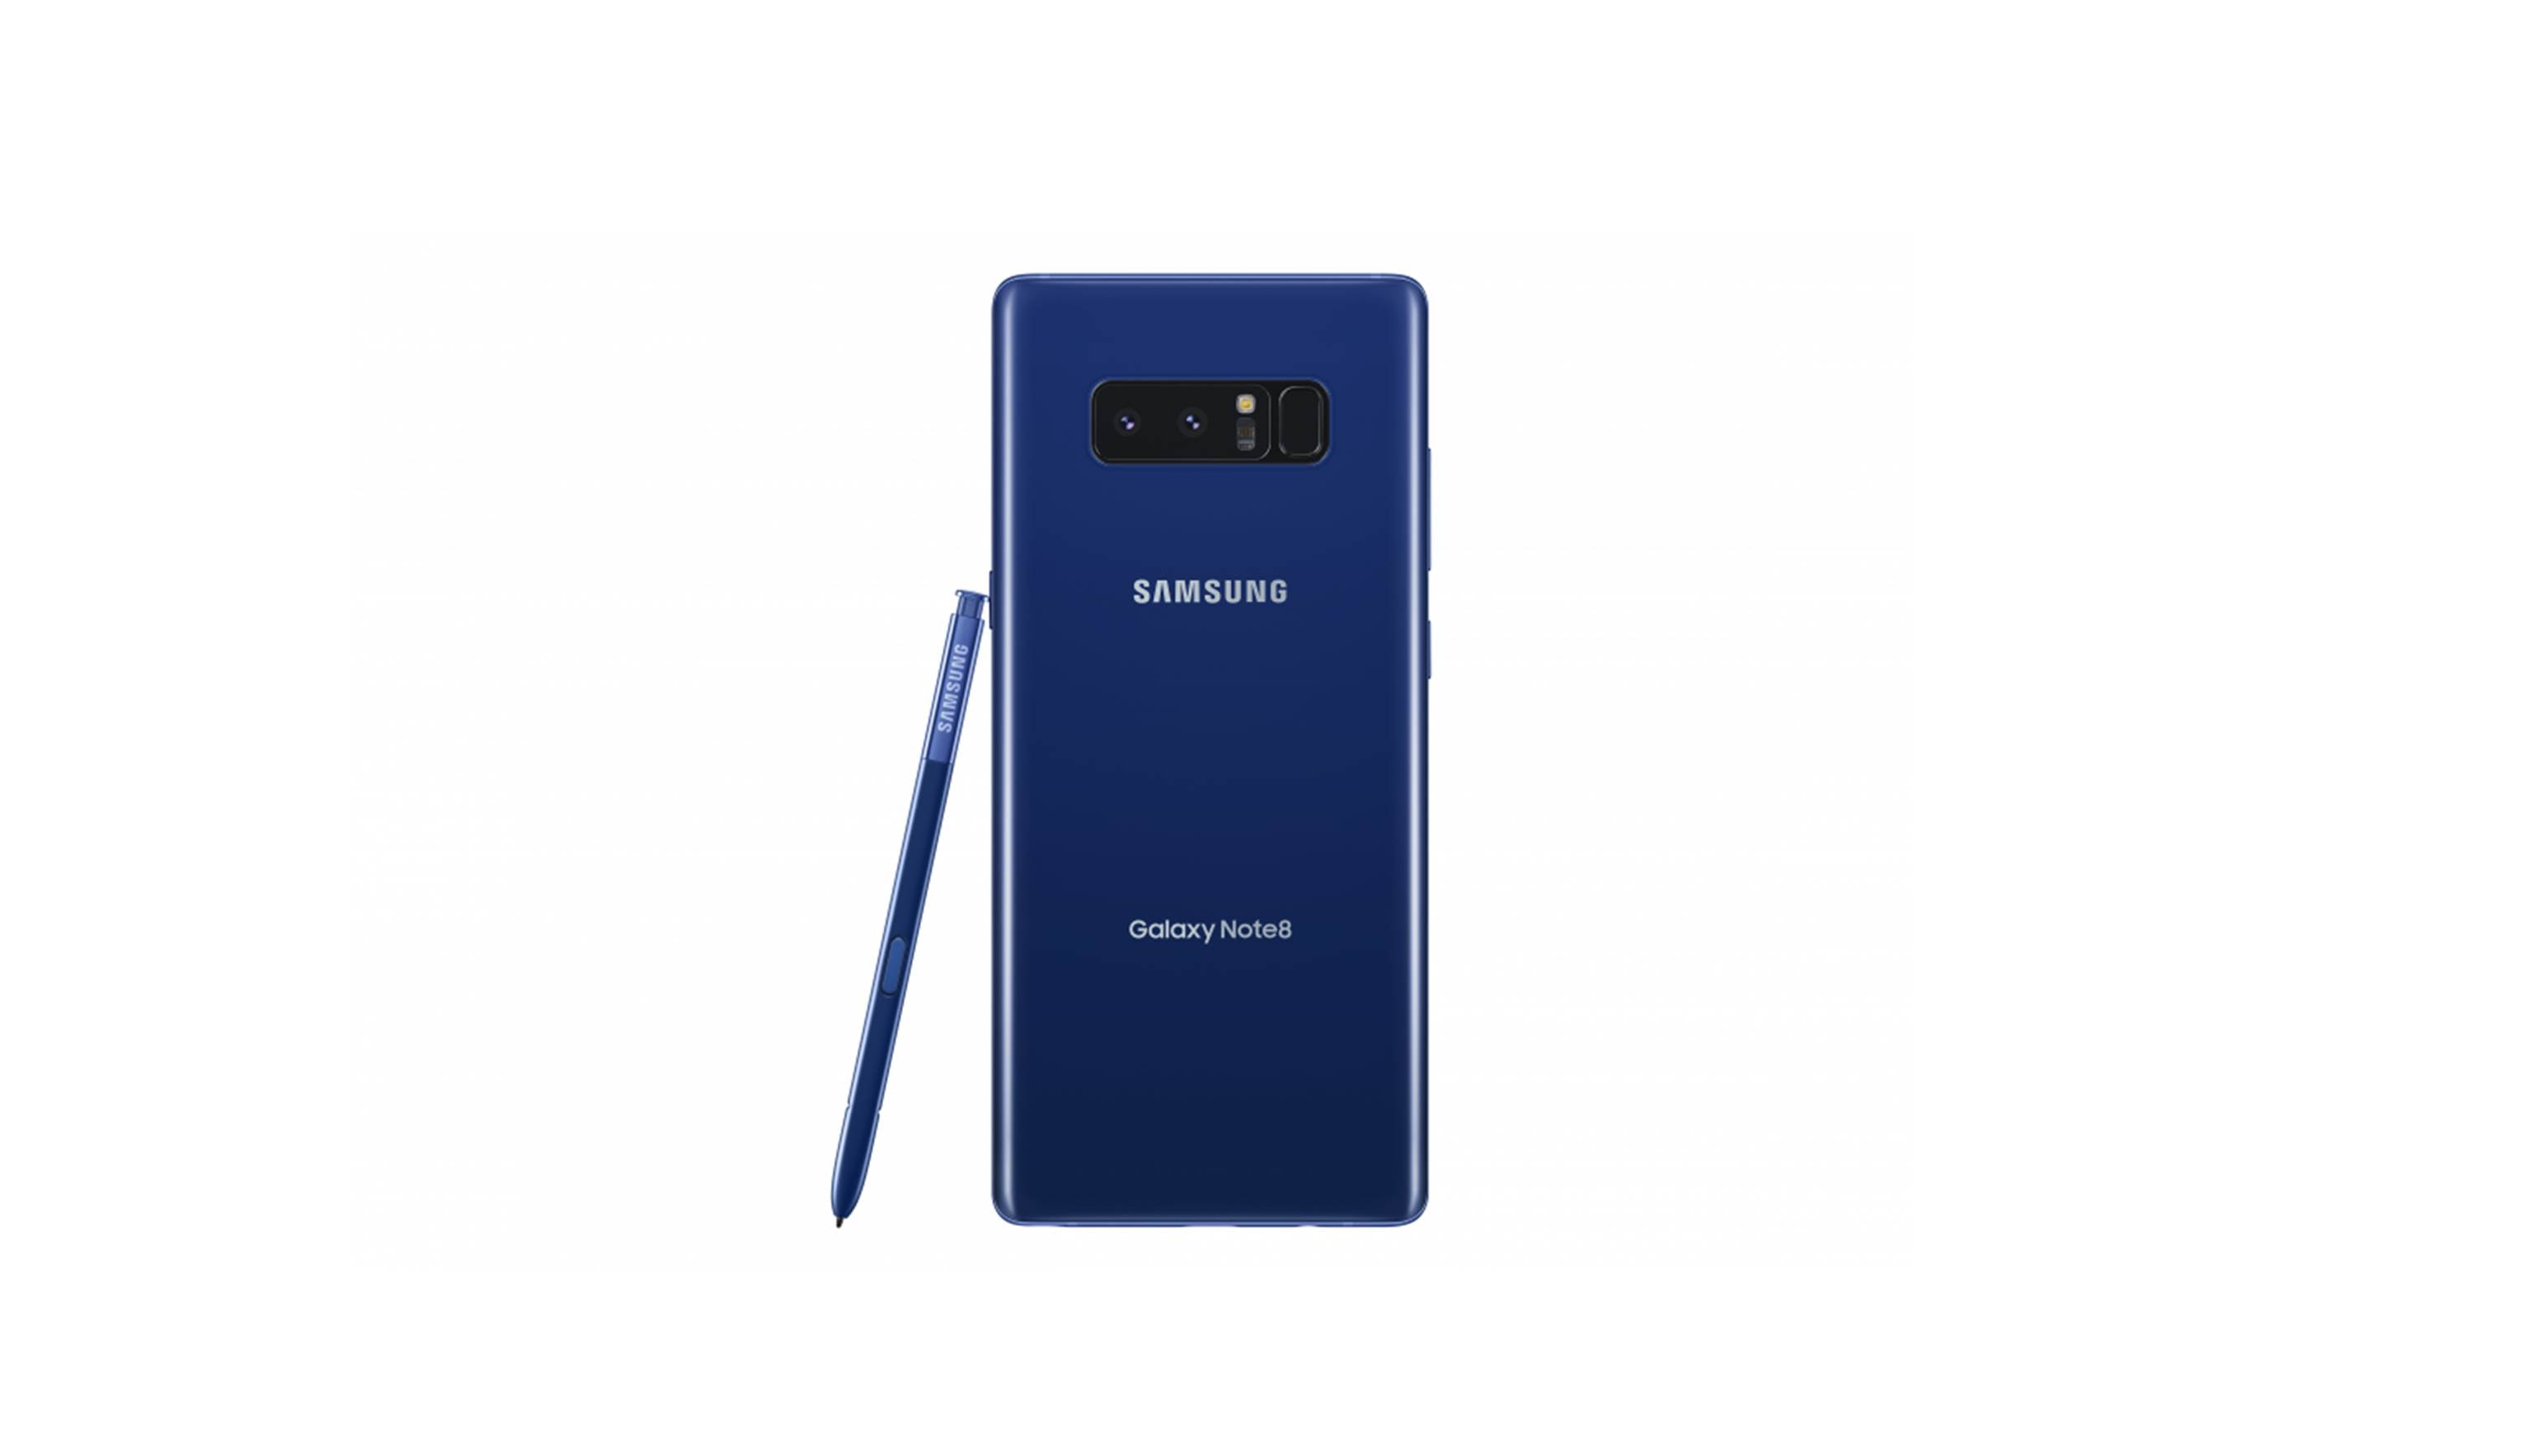 Samsung Galaxy Note8 - Deepsea Blue (2)